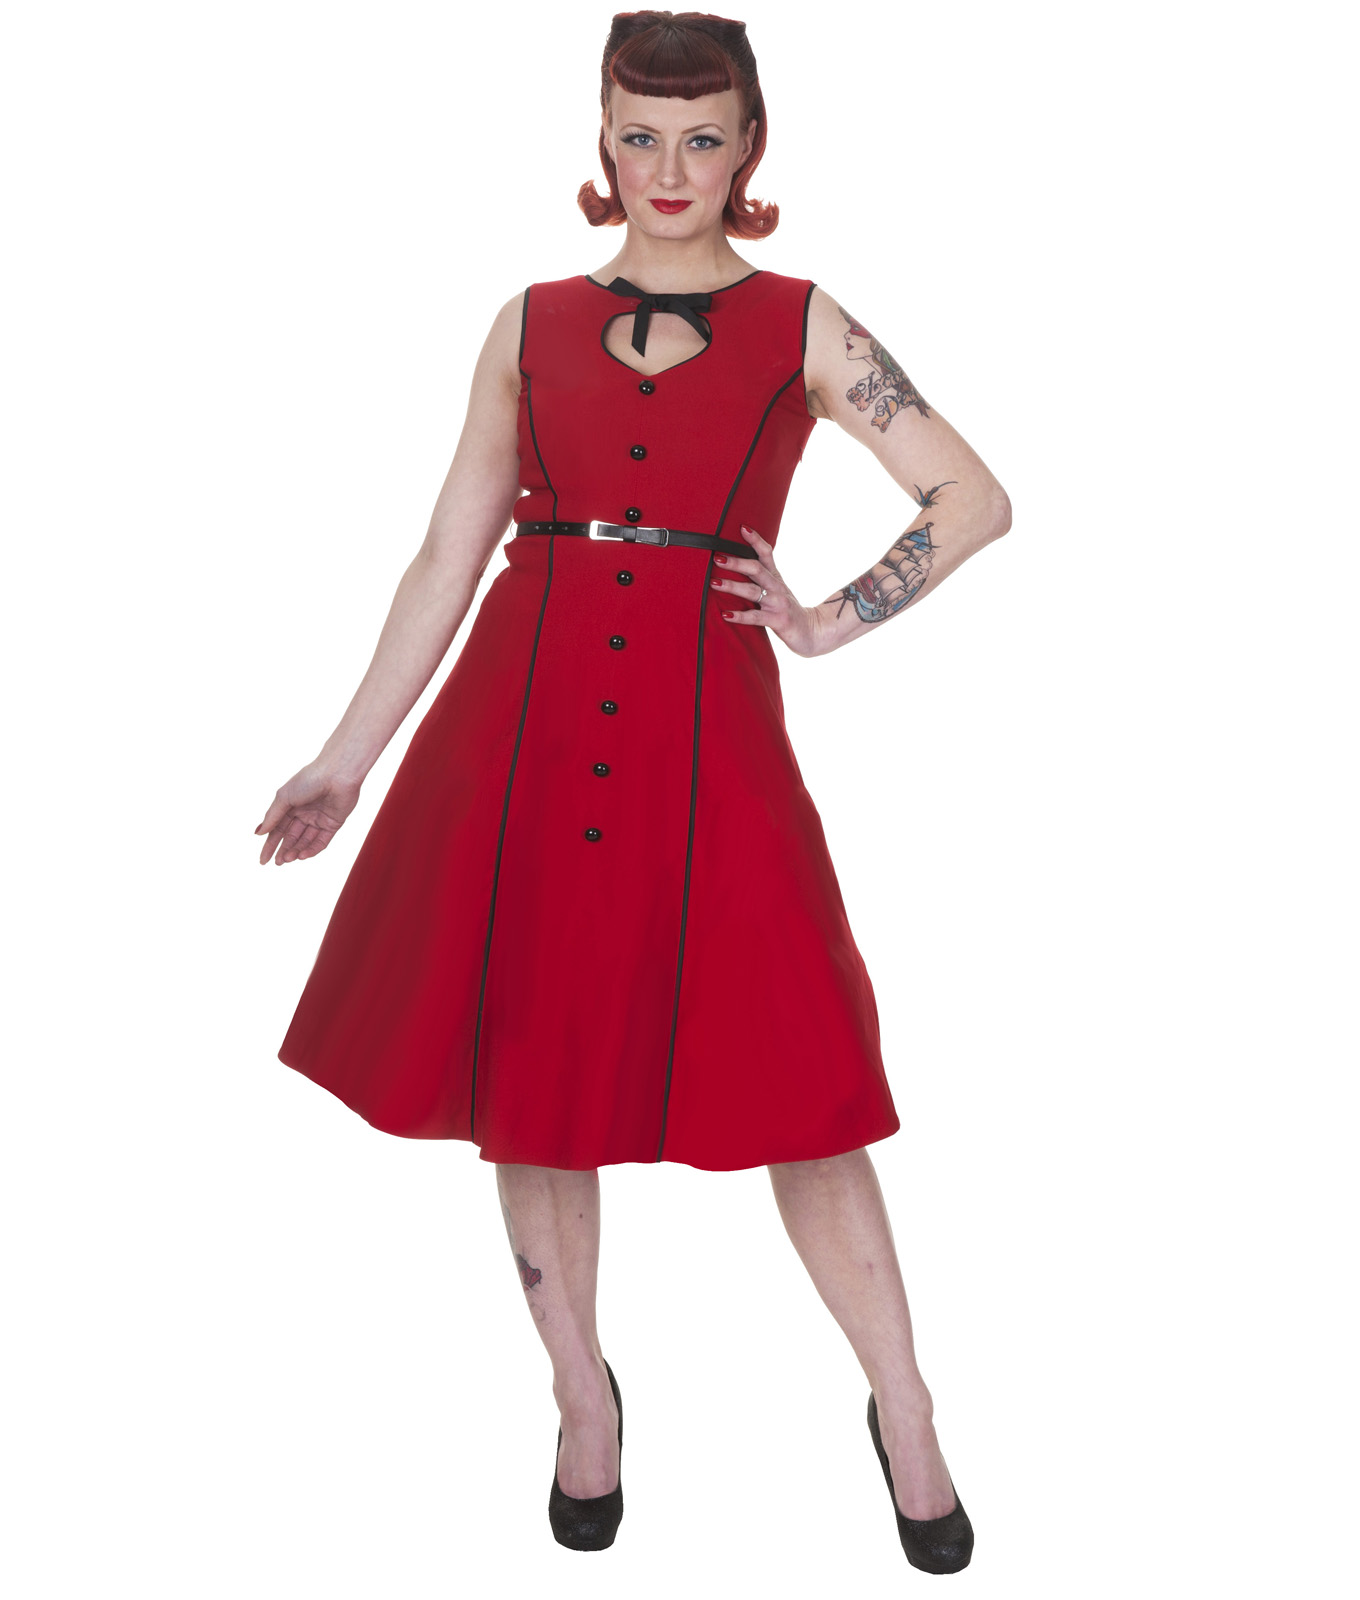 Whispering Ivy 50 39 S Vintage Style Button Dress